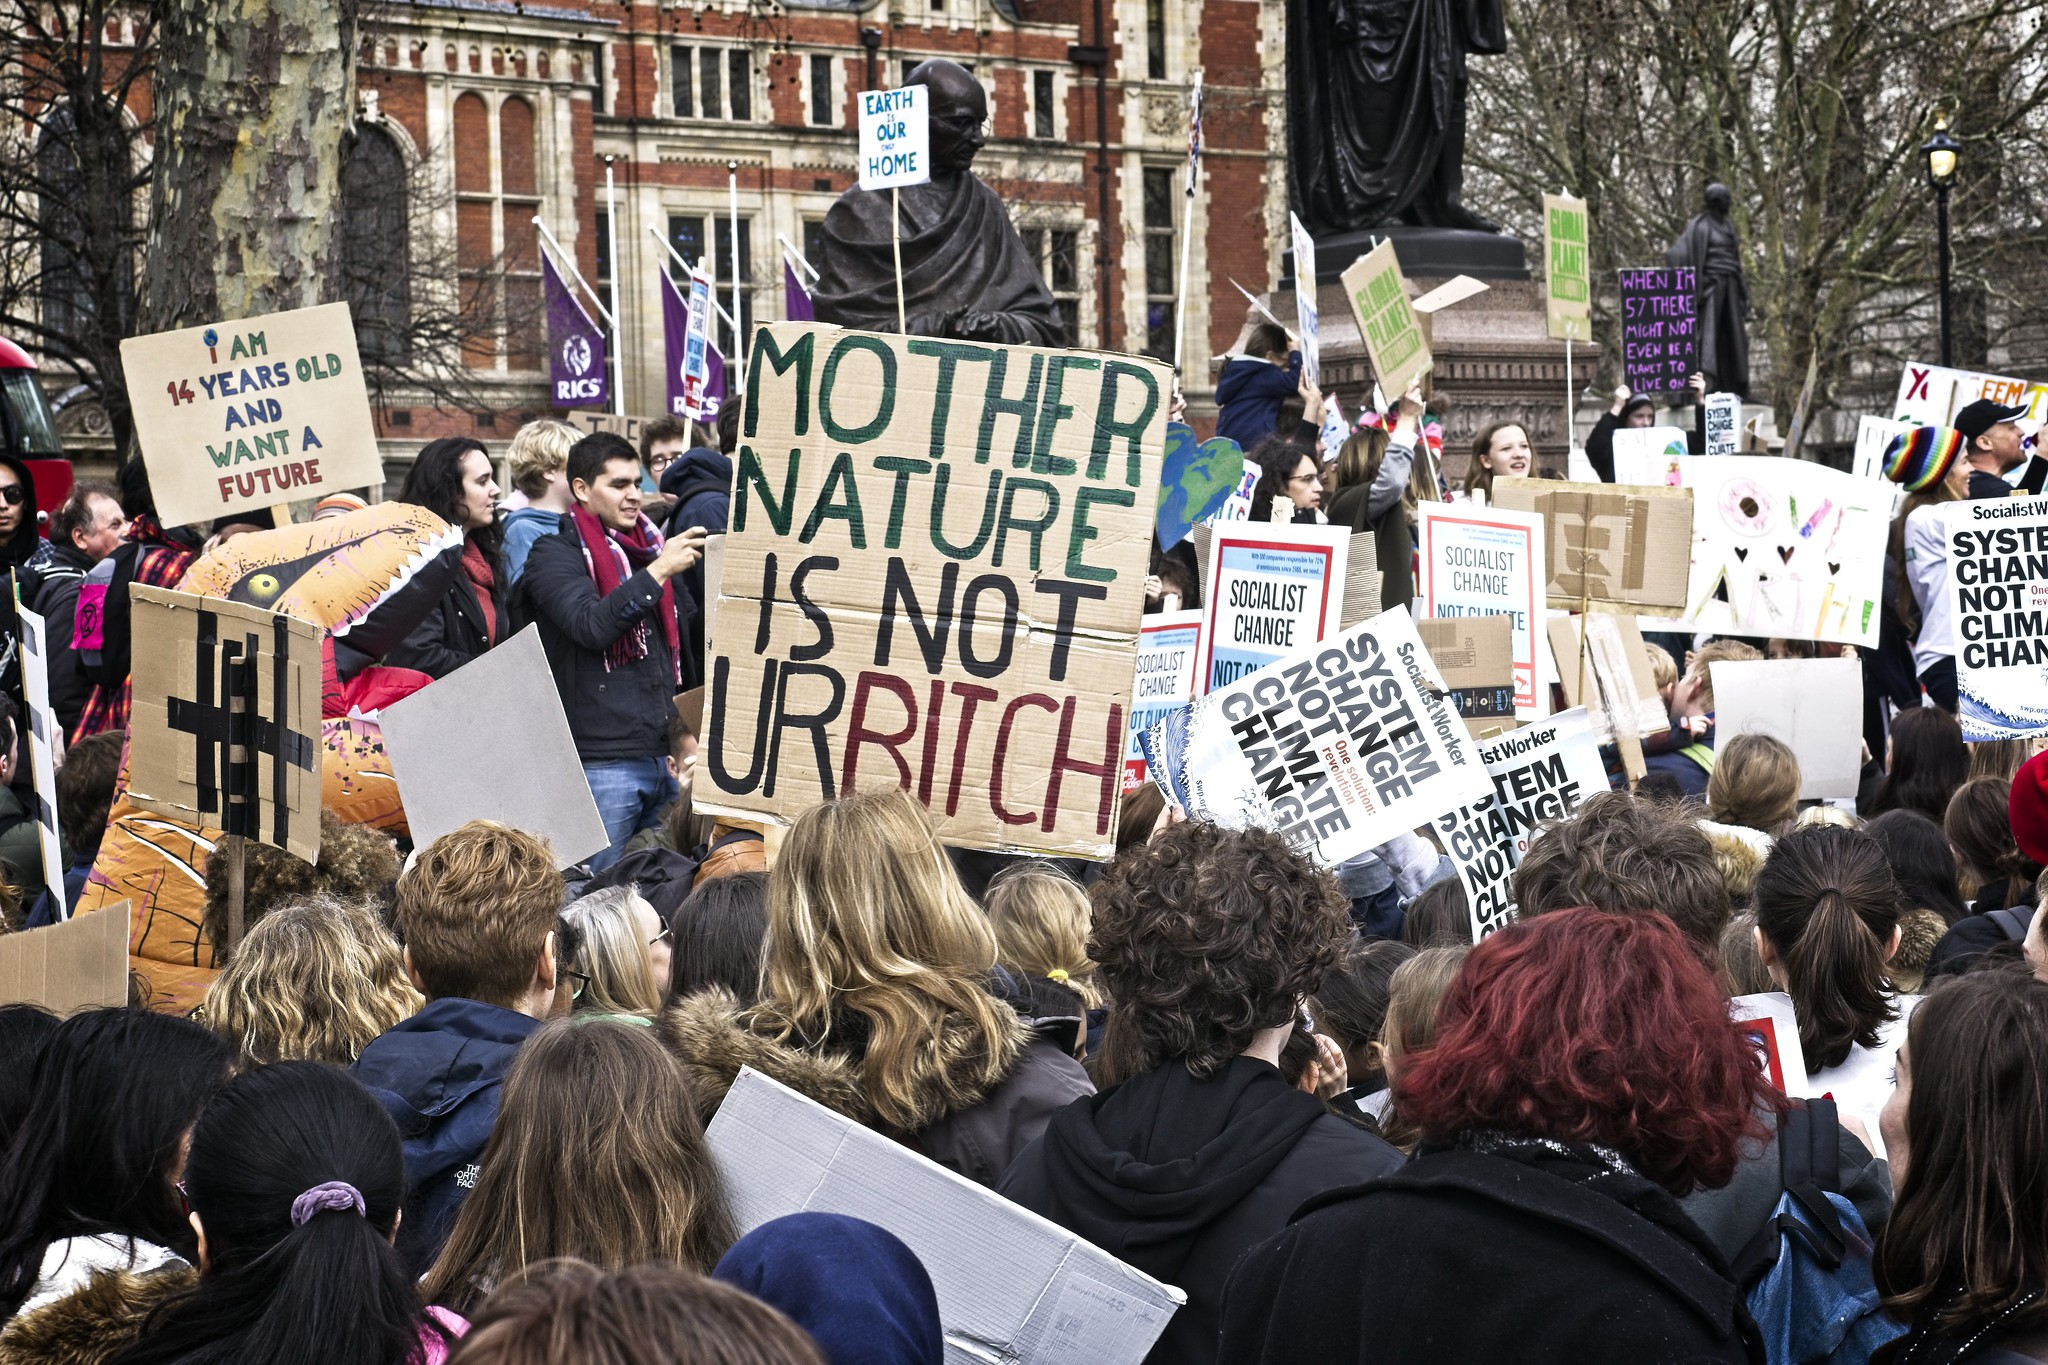 Young people on Global Climate strike in London March 2019. Picture by Garry Knight